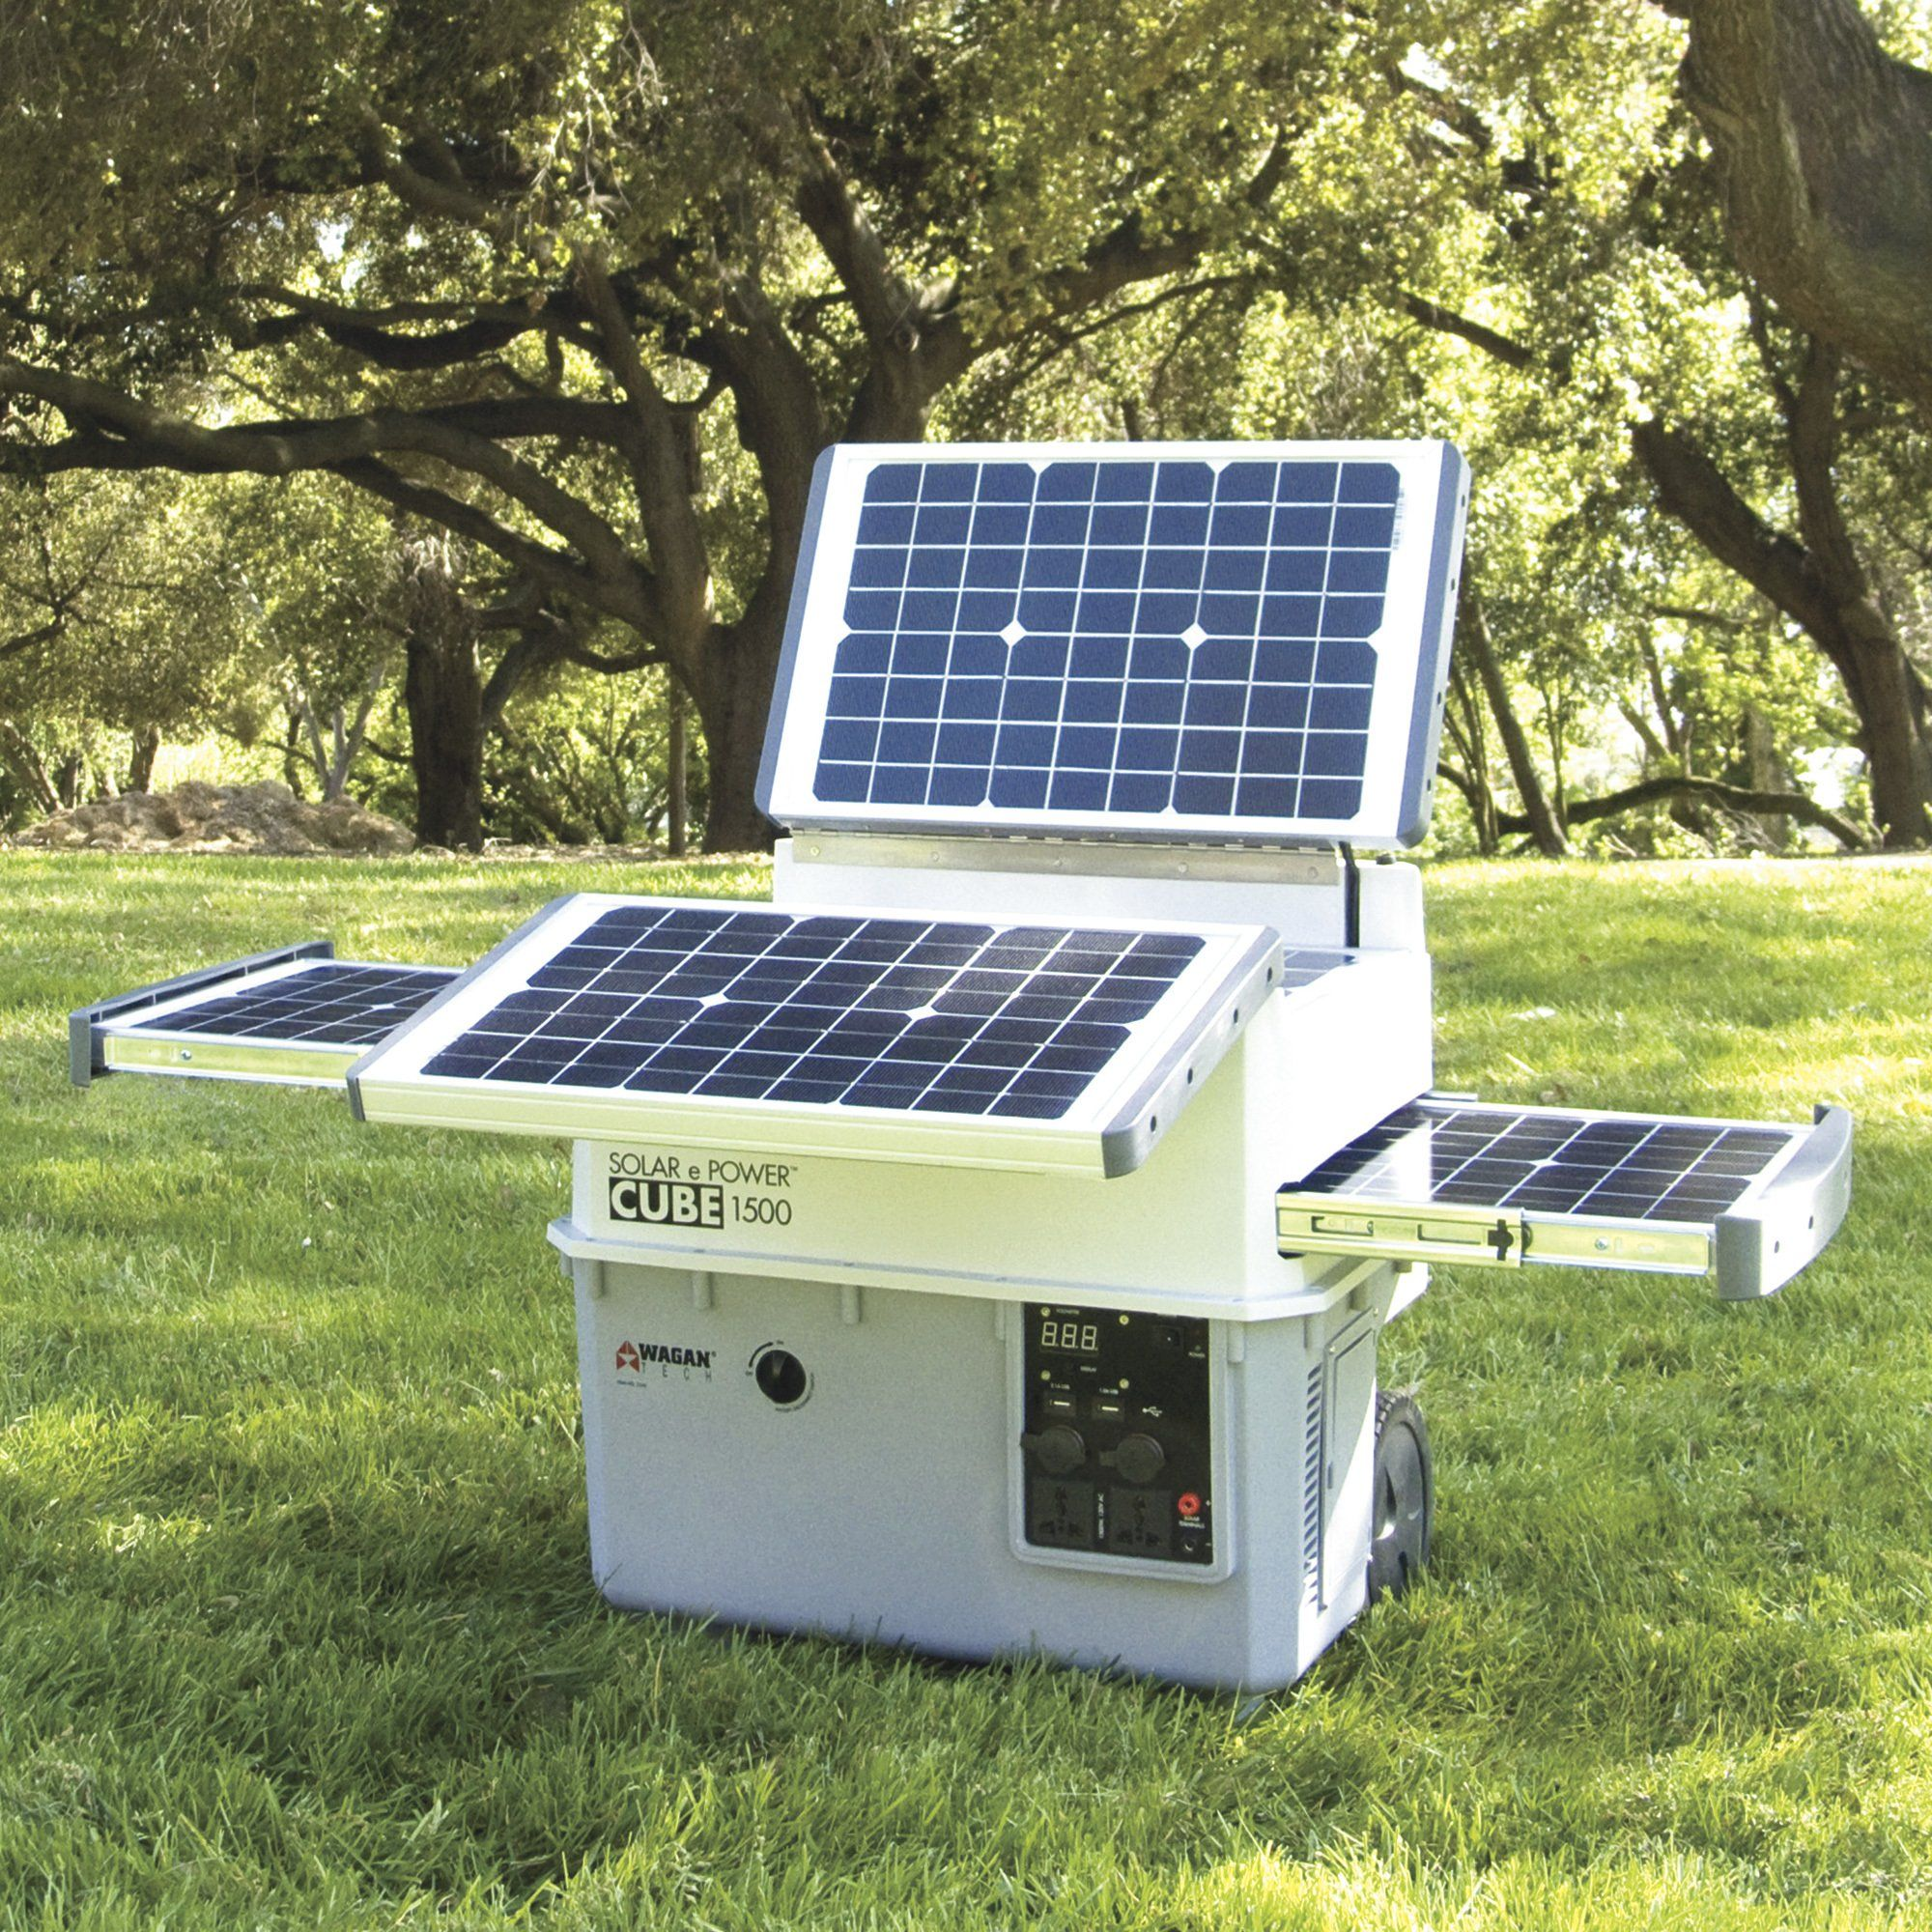 Solar Epower Cube 1500 5 Panel Model 2546 In 2020 Solar Panels Best Solar Panels Solar Energy Panels